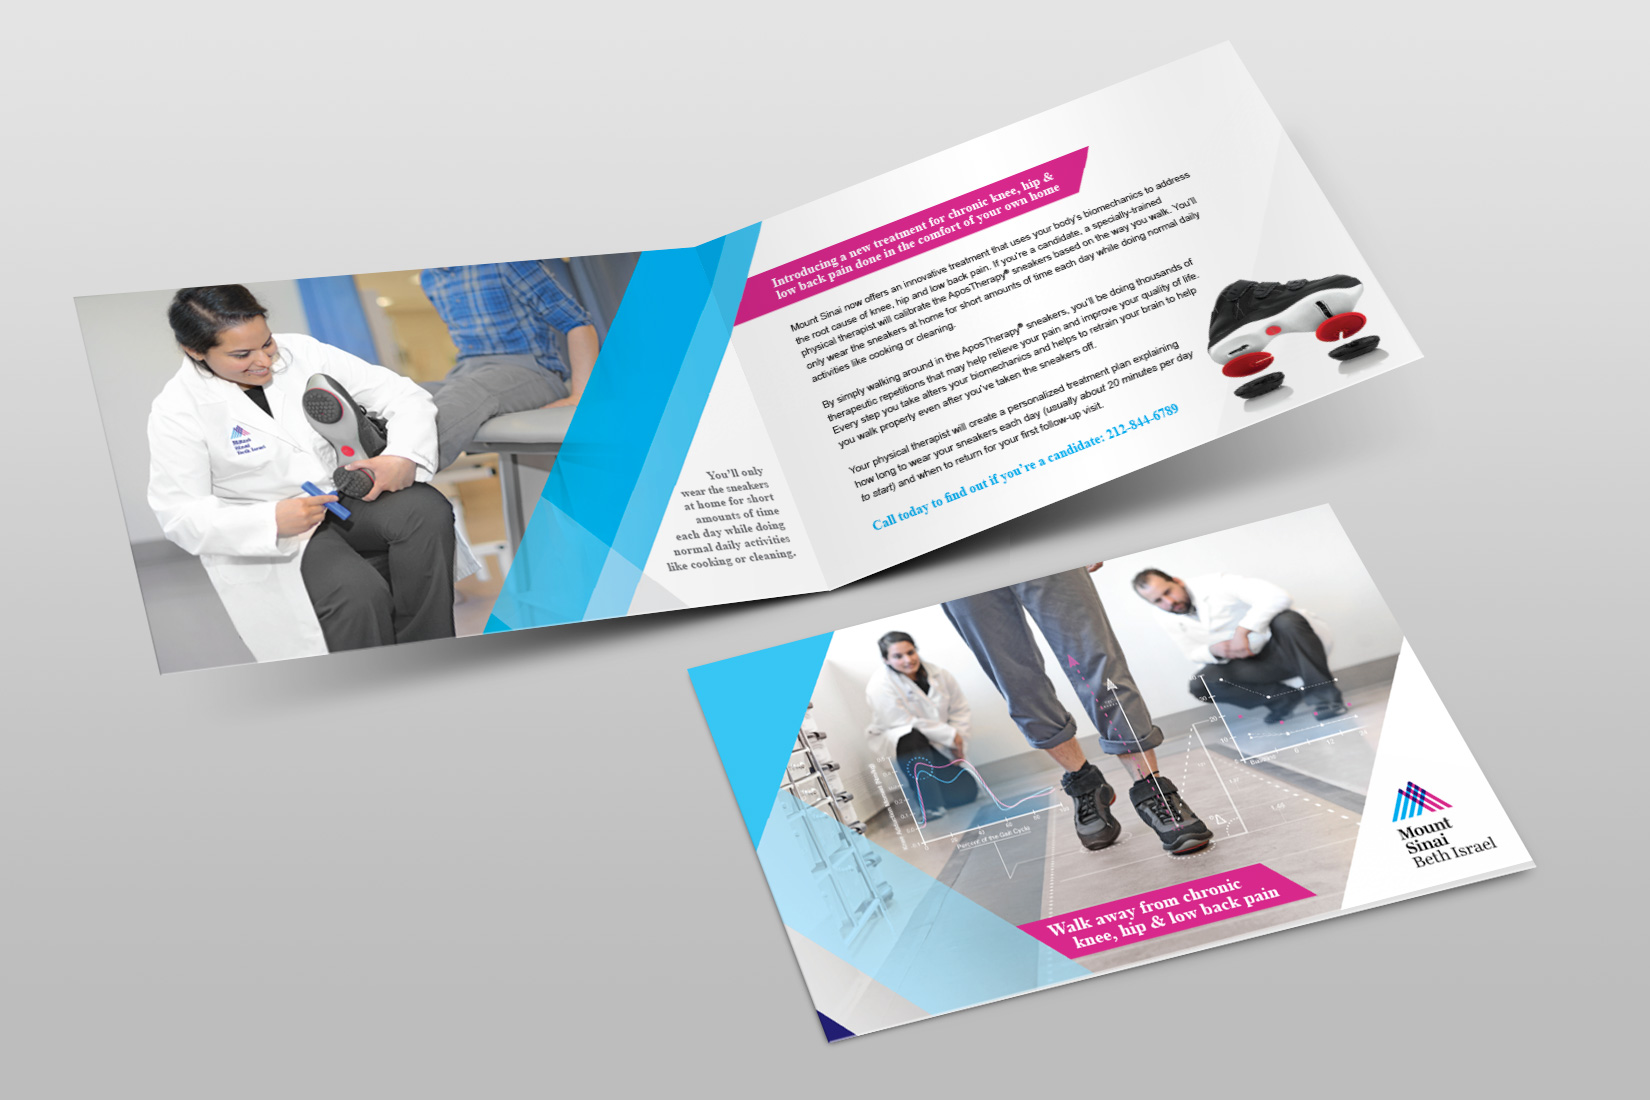 I shot the photography, wrote the copy, and designed this Mount Sinai brochure featuring AposTherapy treatment.